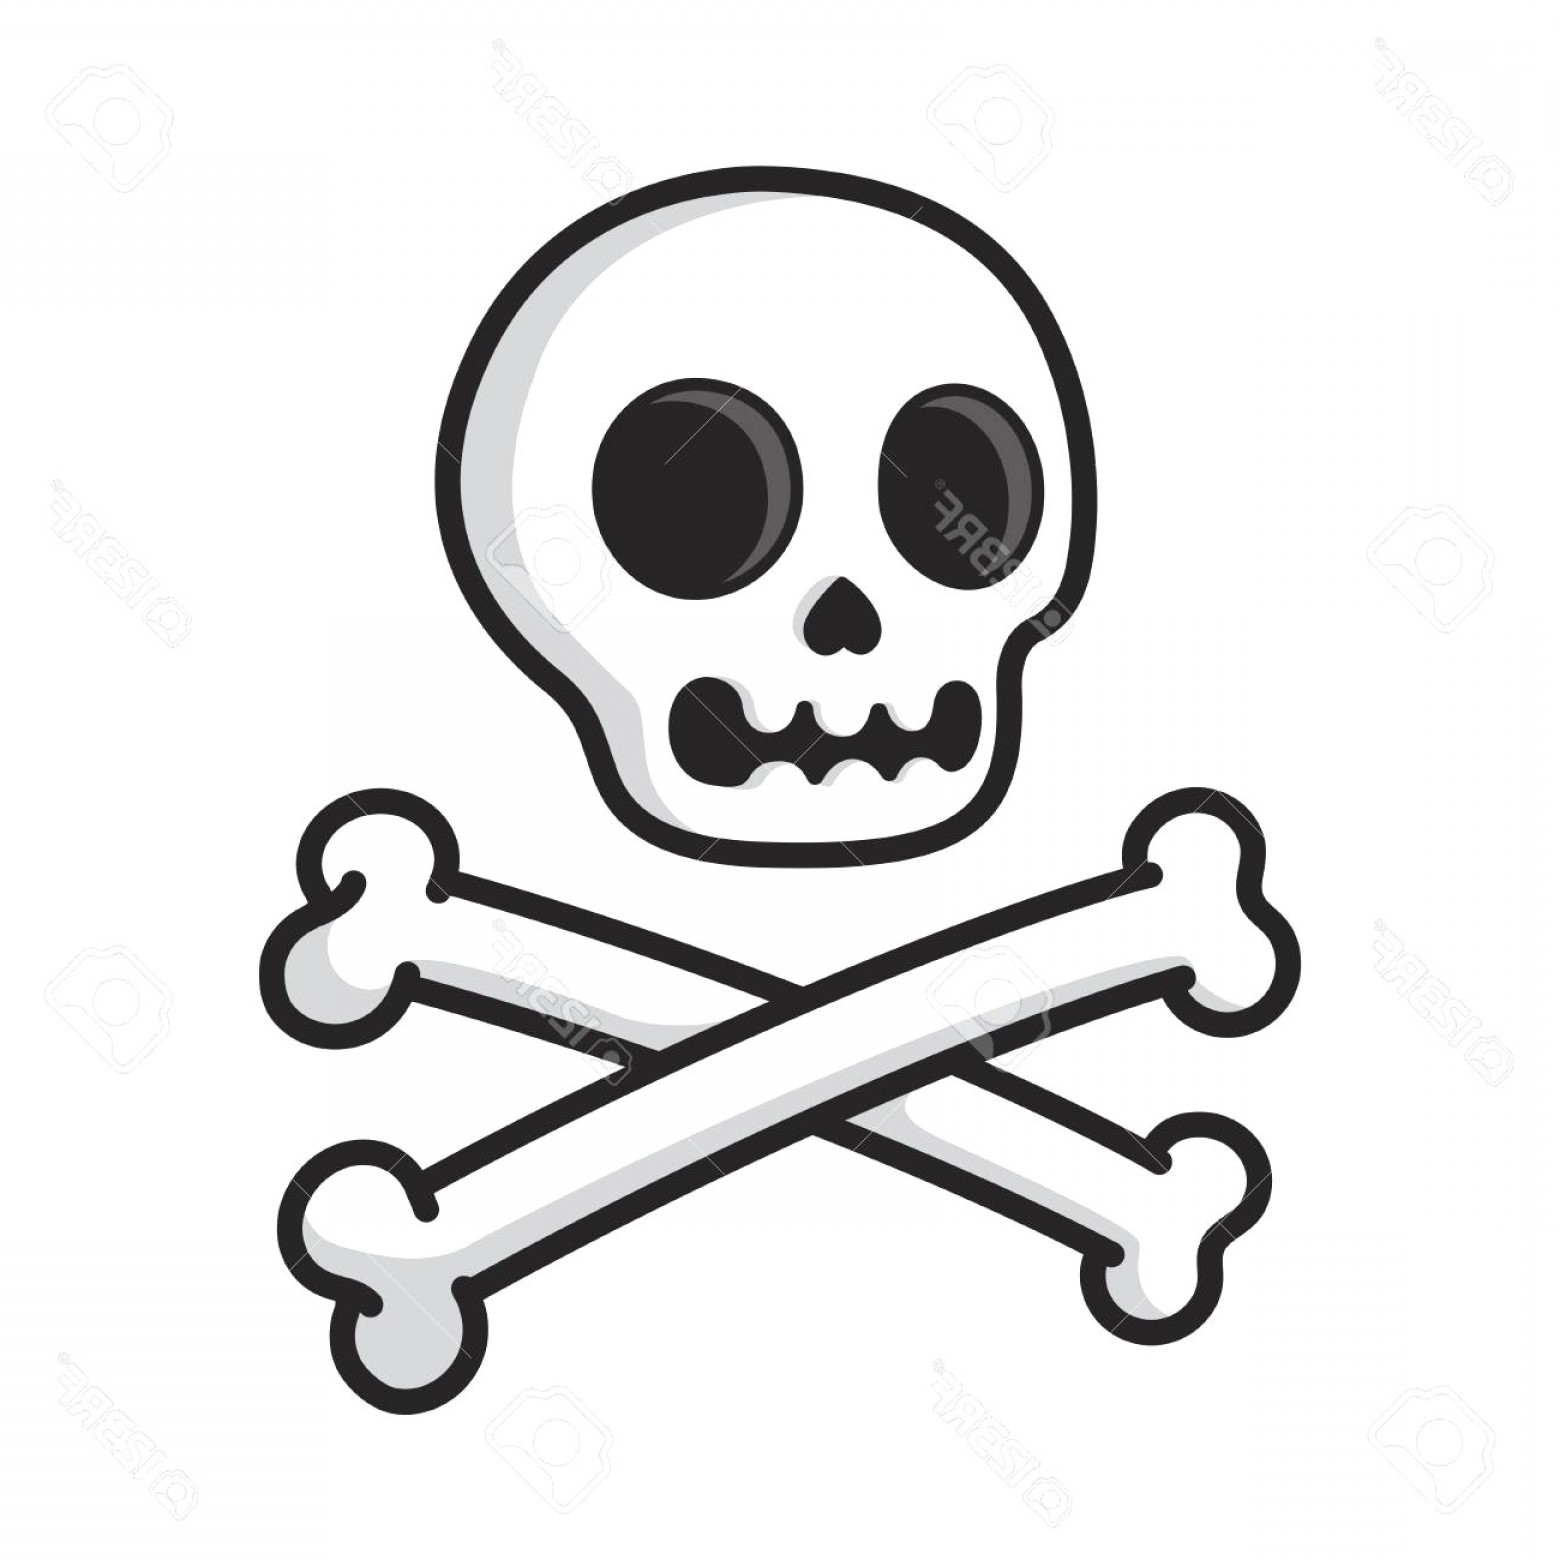 1560x1560 Simple Cartoon Skull And Crossbones Isolated On White Modern Comic